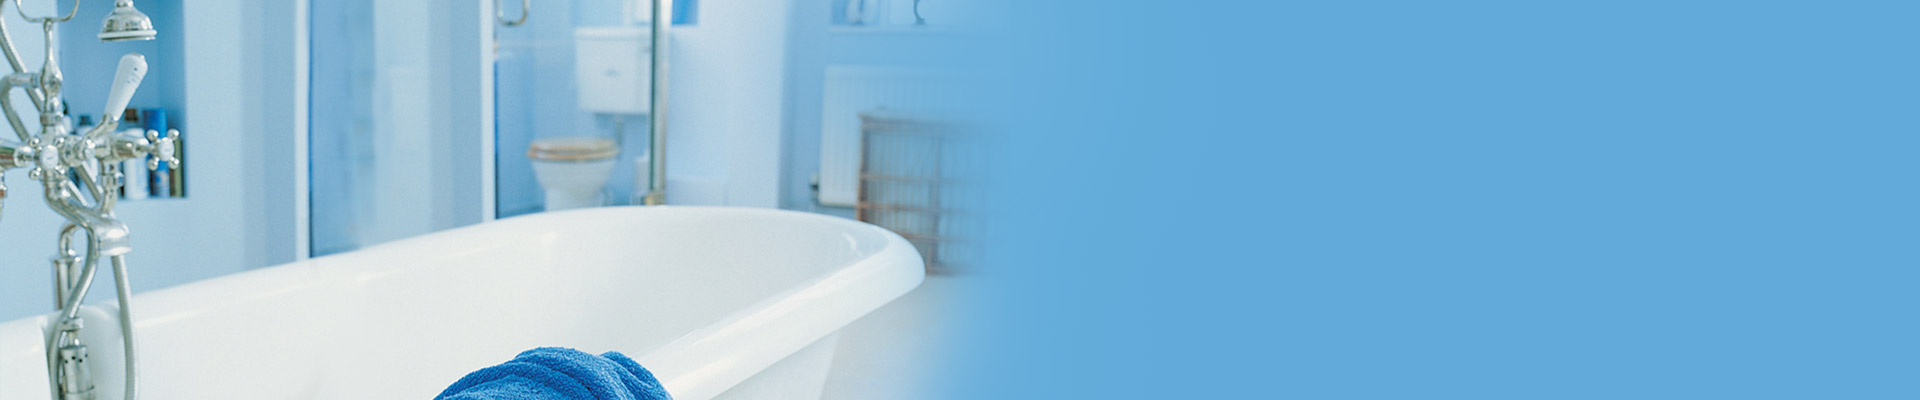 Beautiful Bathrooms Illawarra bathroomwerx: for bathroom enamel resurfacing & renovations